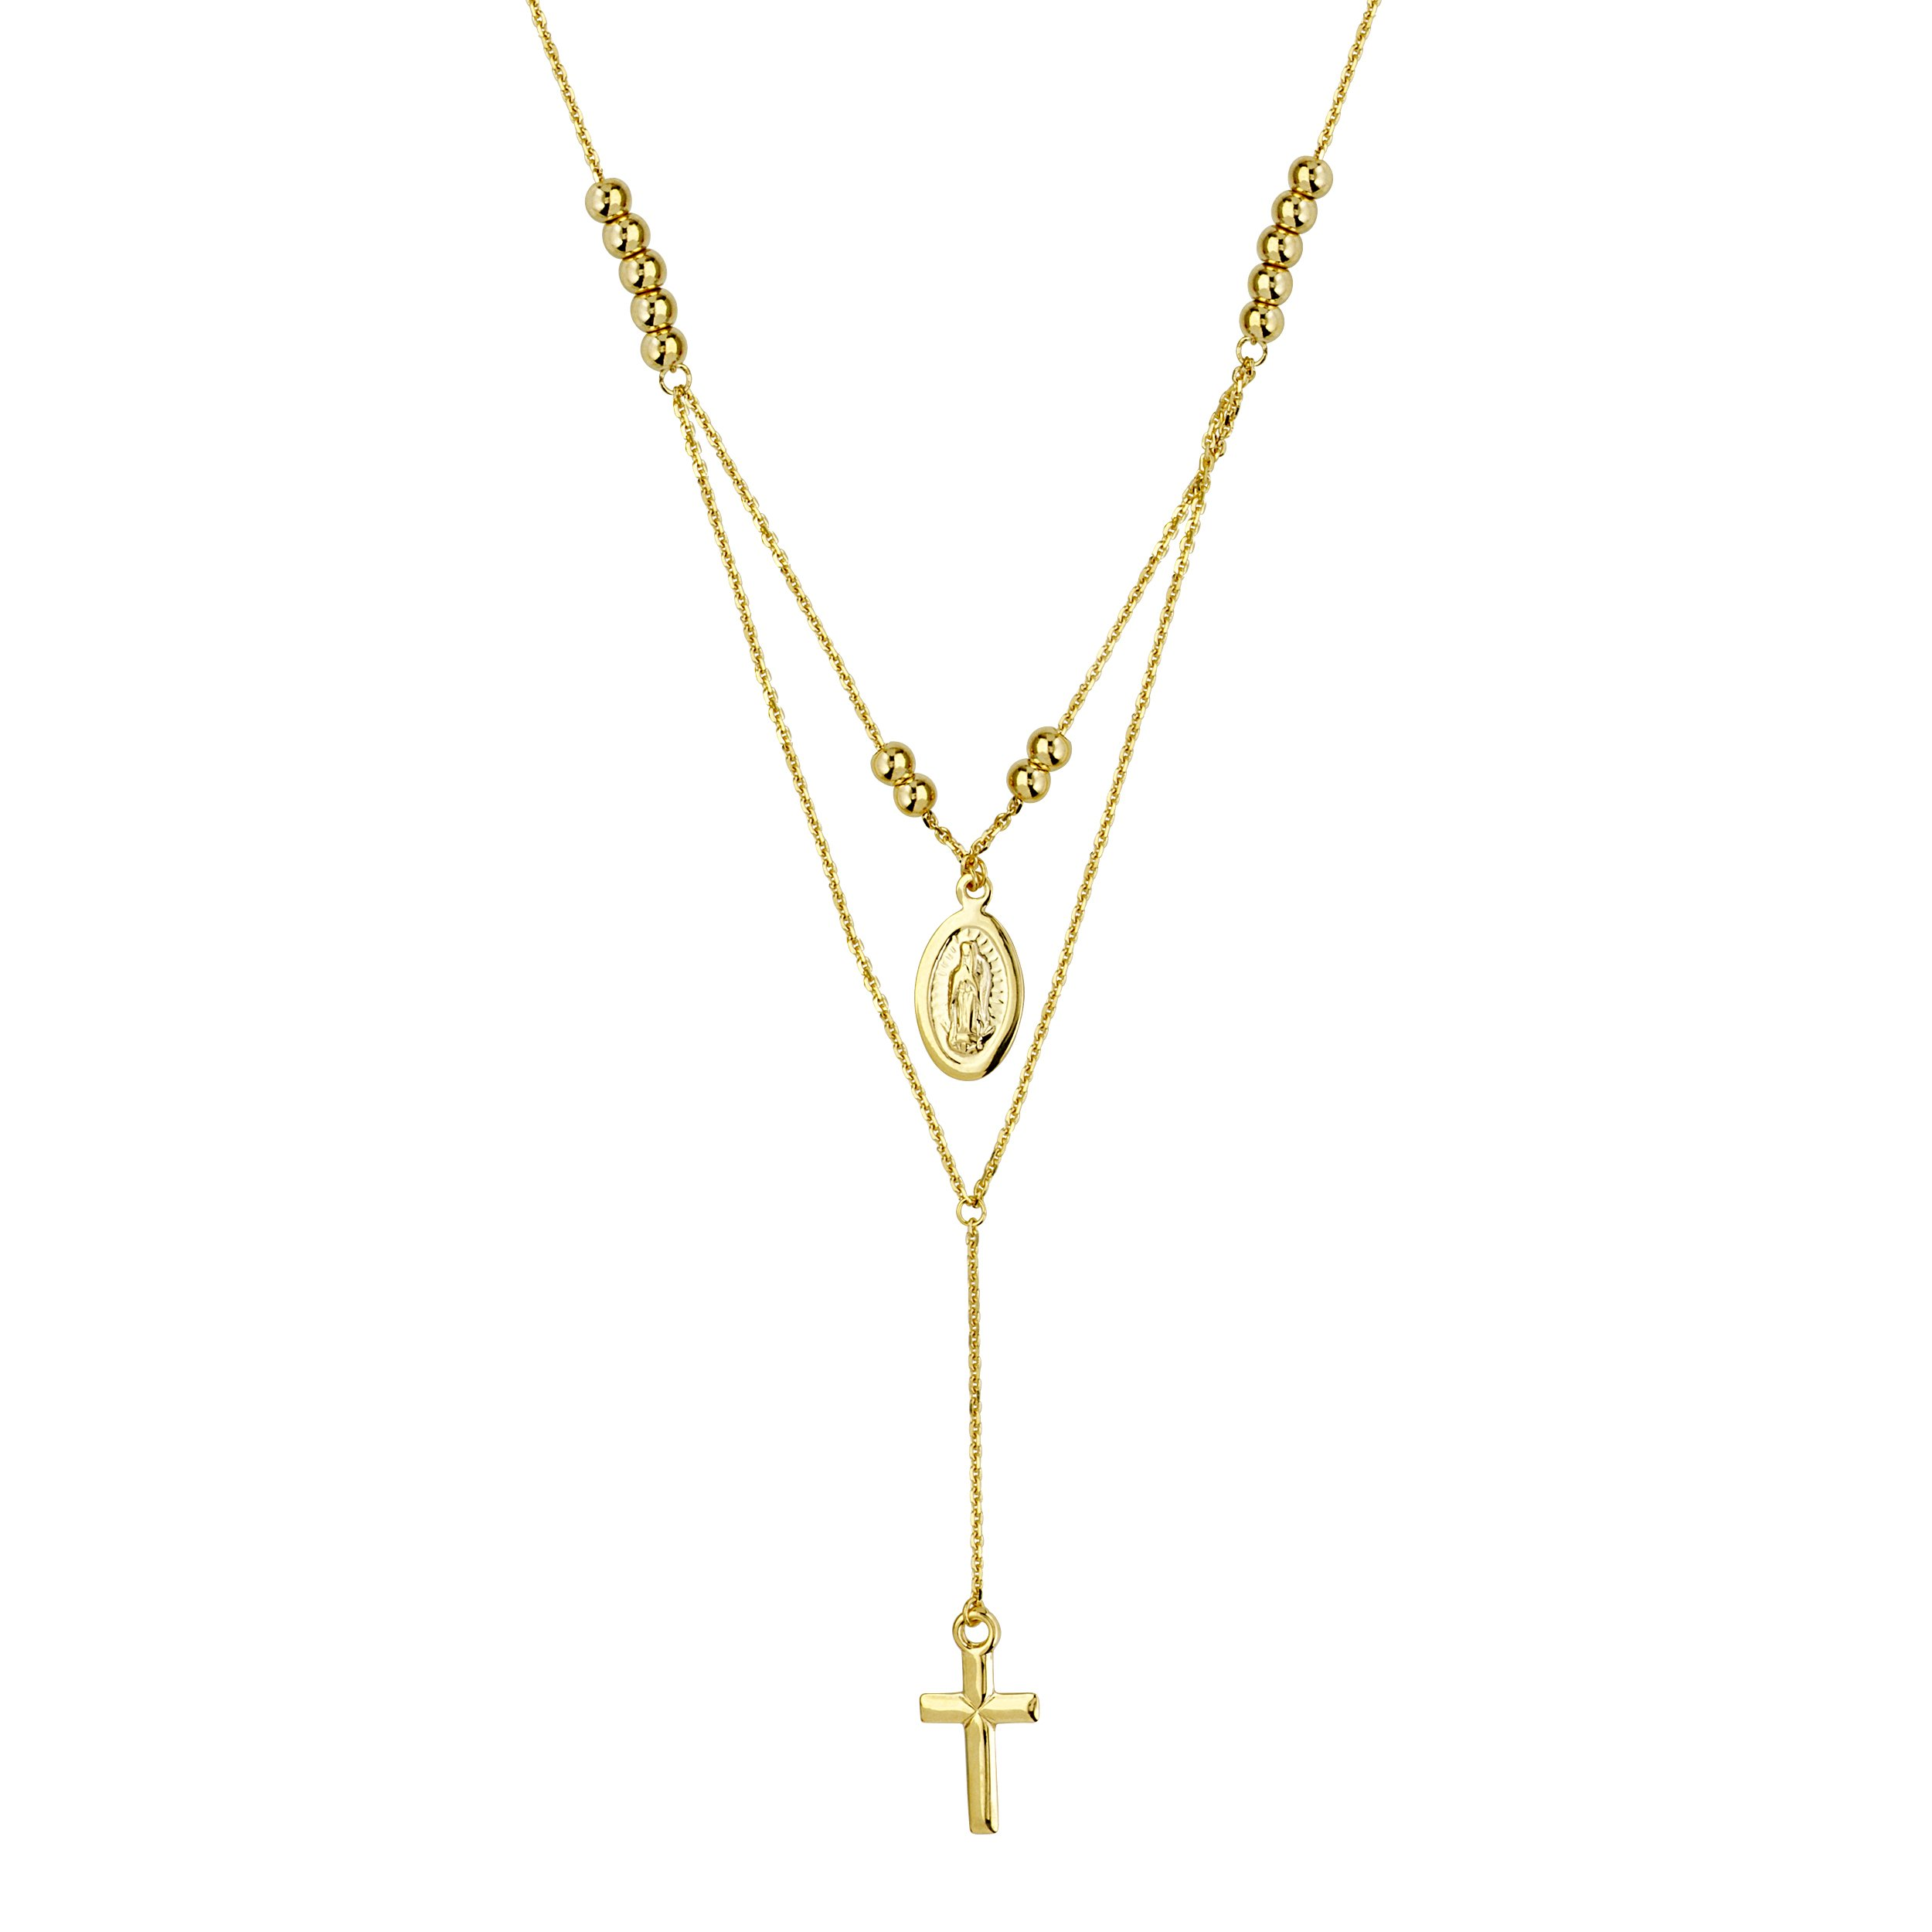 14k Gold Y-style Necklace with Beads, Virgin Mary Medallion and Cross Drop